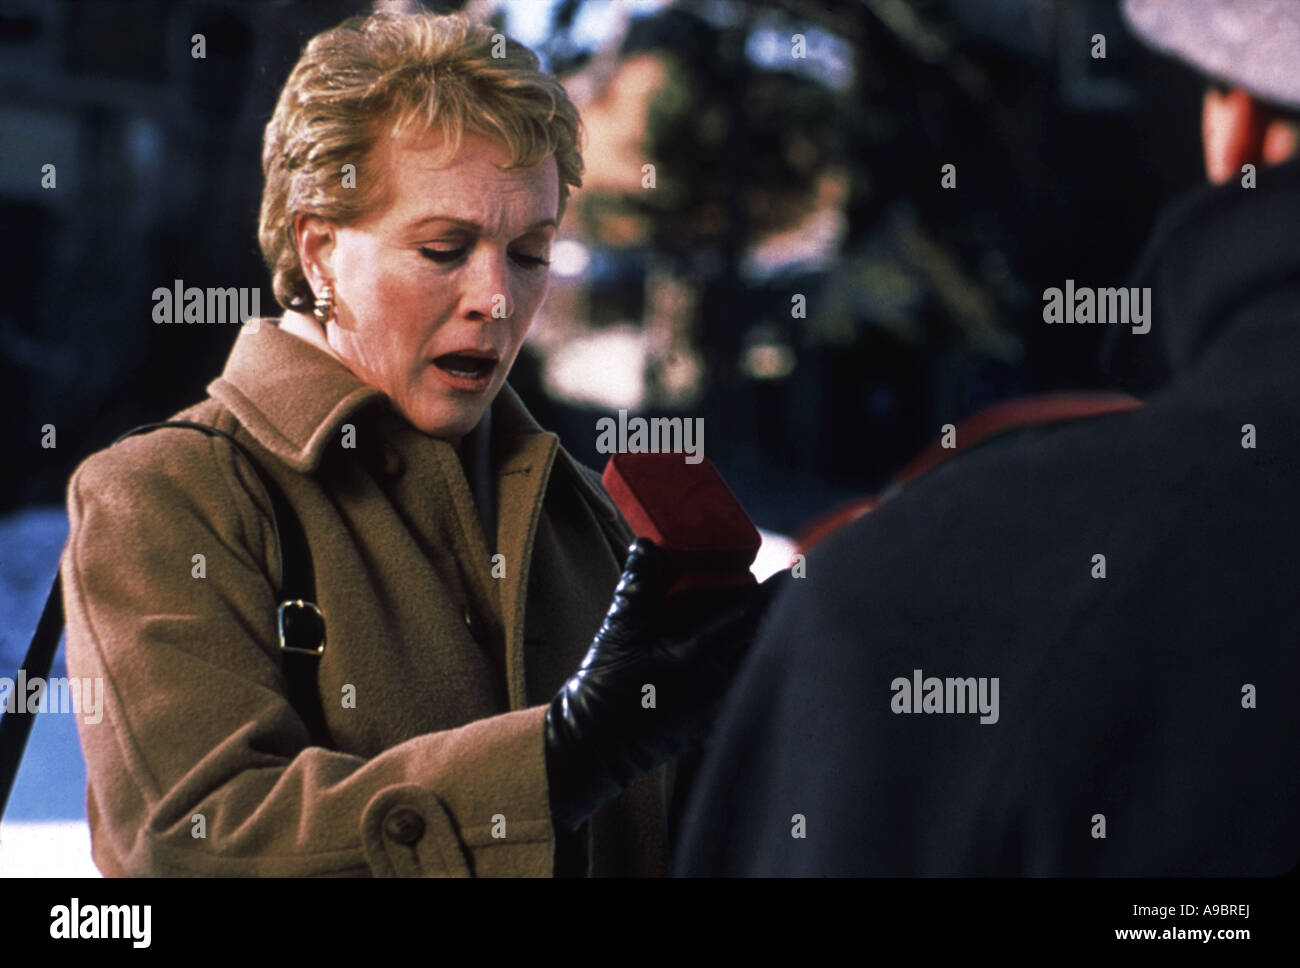 ONE SPECIAL NIGHT - 1999 TV film with Julie Andrews - Stock Image